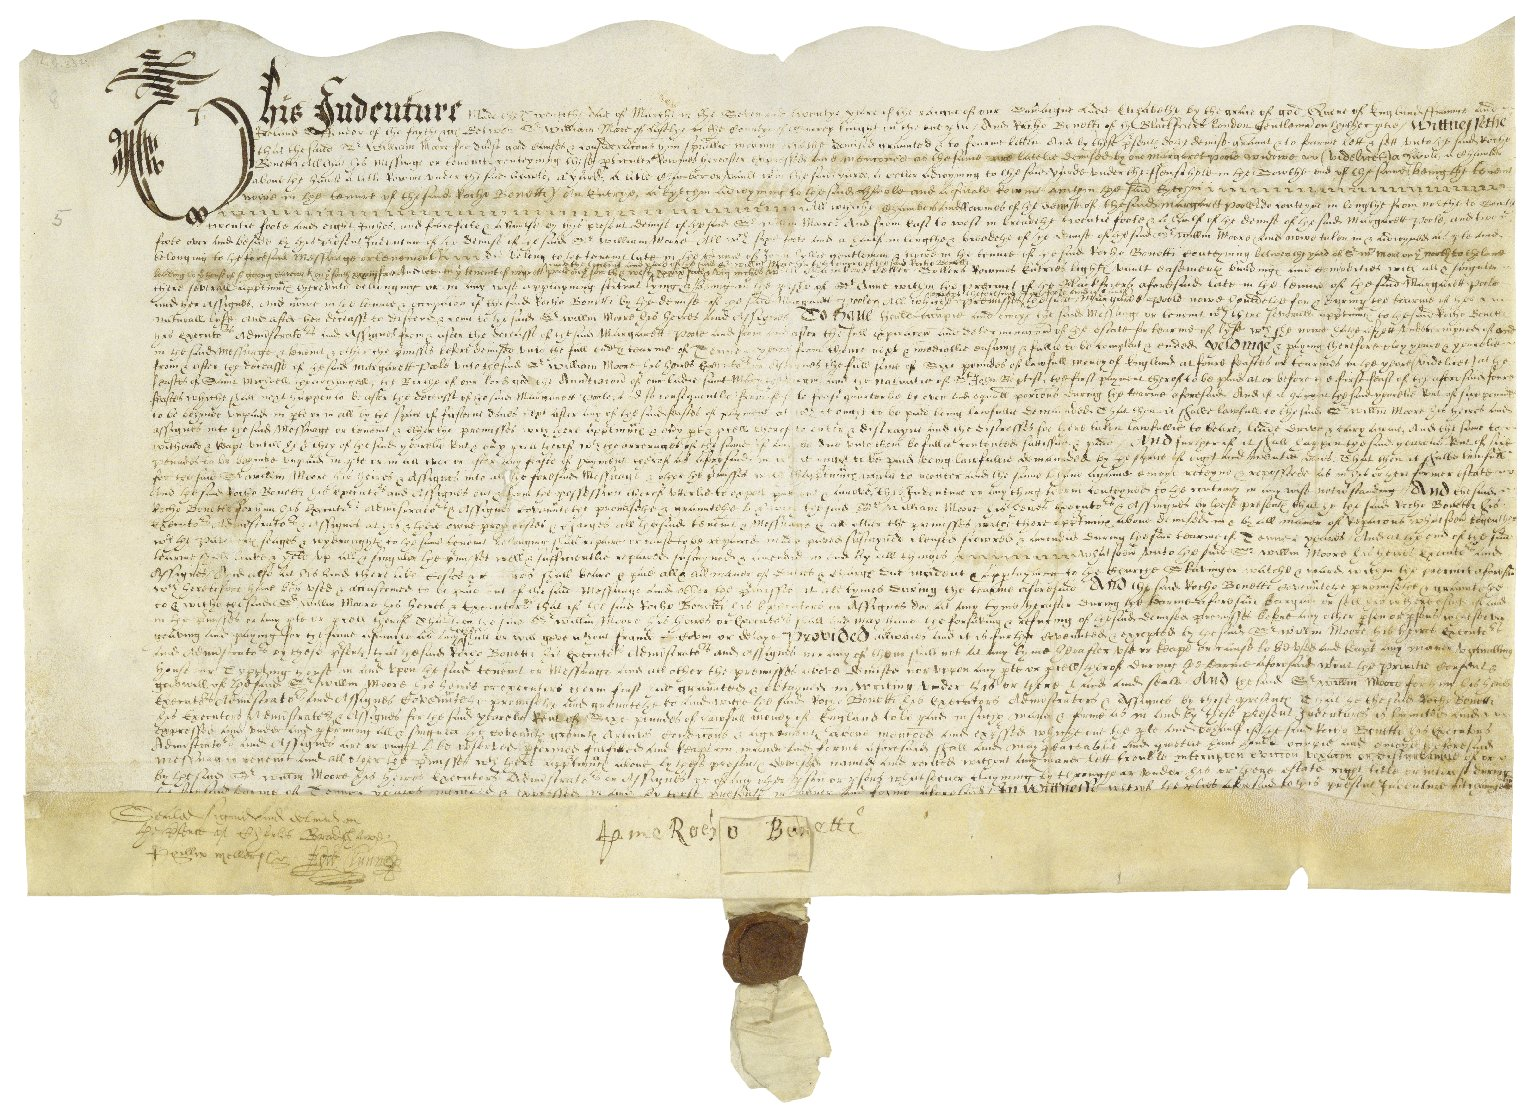 A large document with a wavy top edge and a seal hanging from the bottom, written tightly in early modern secretary hand